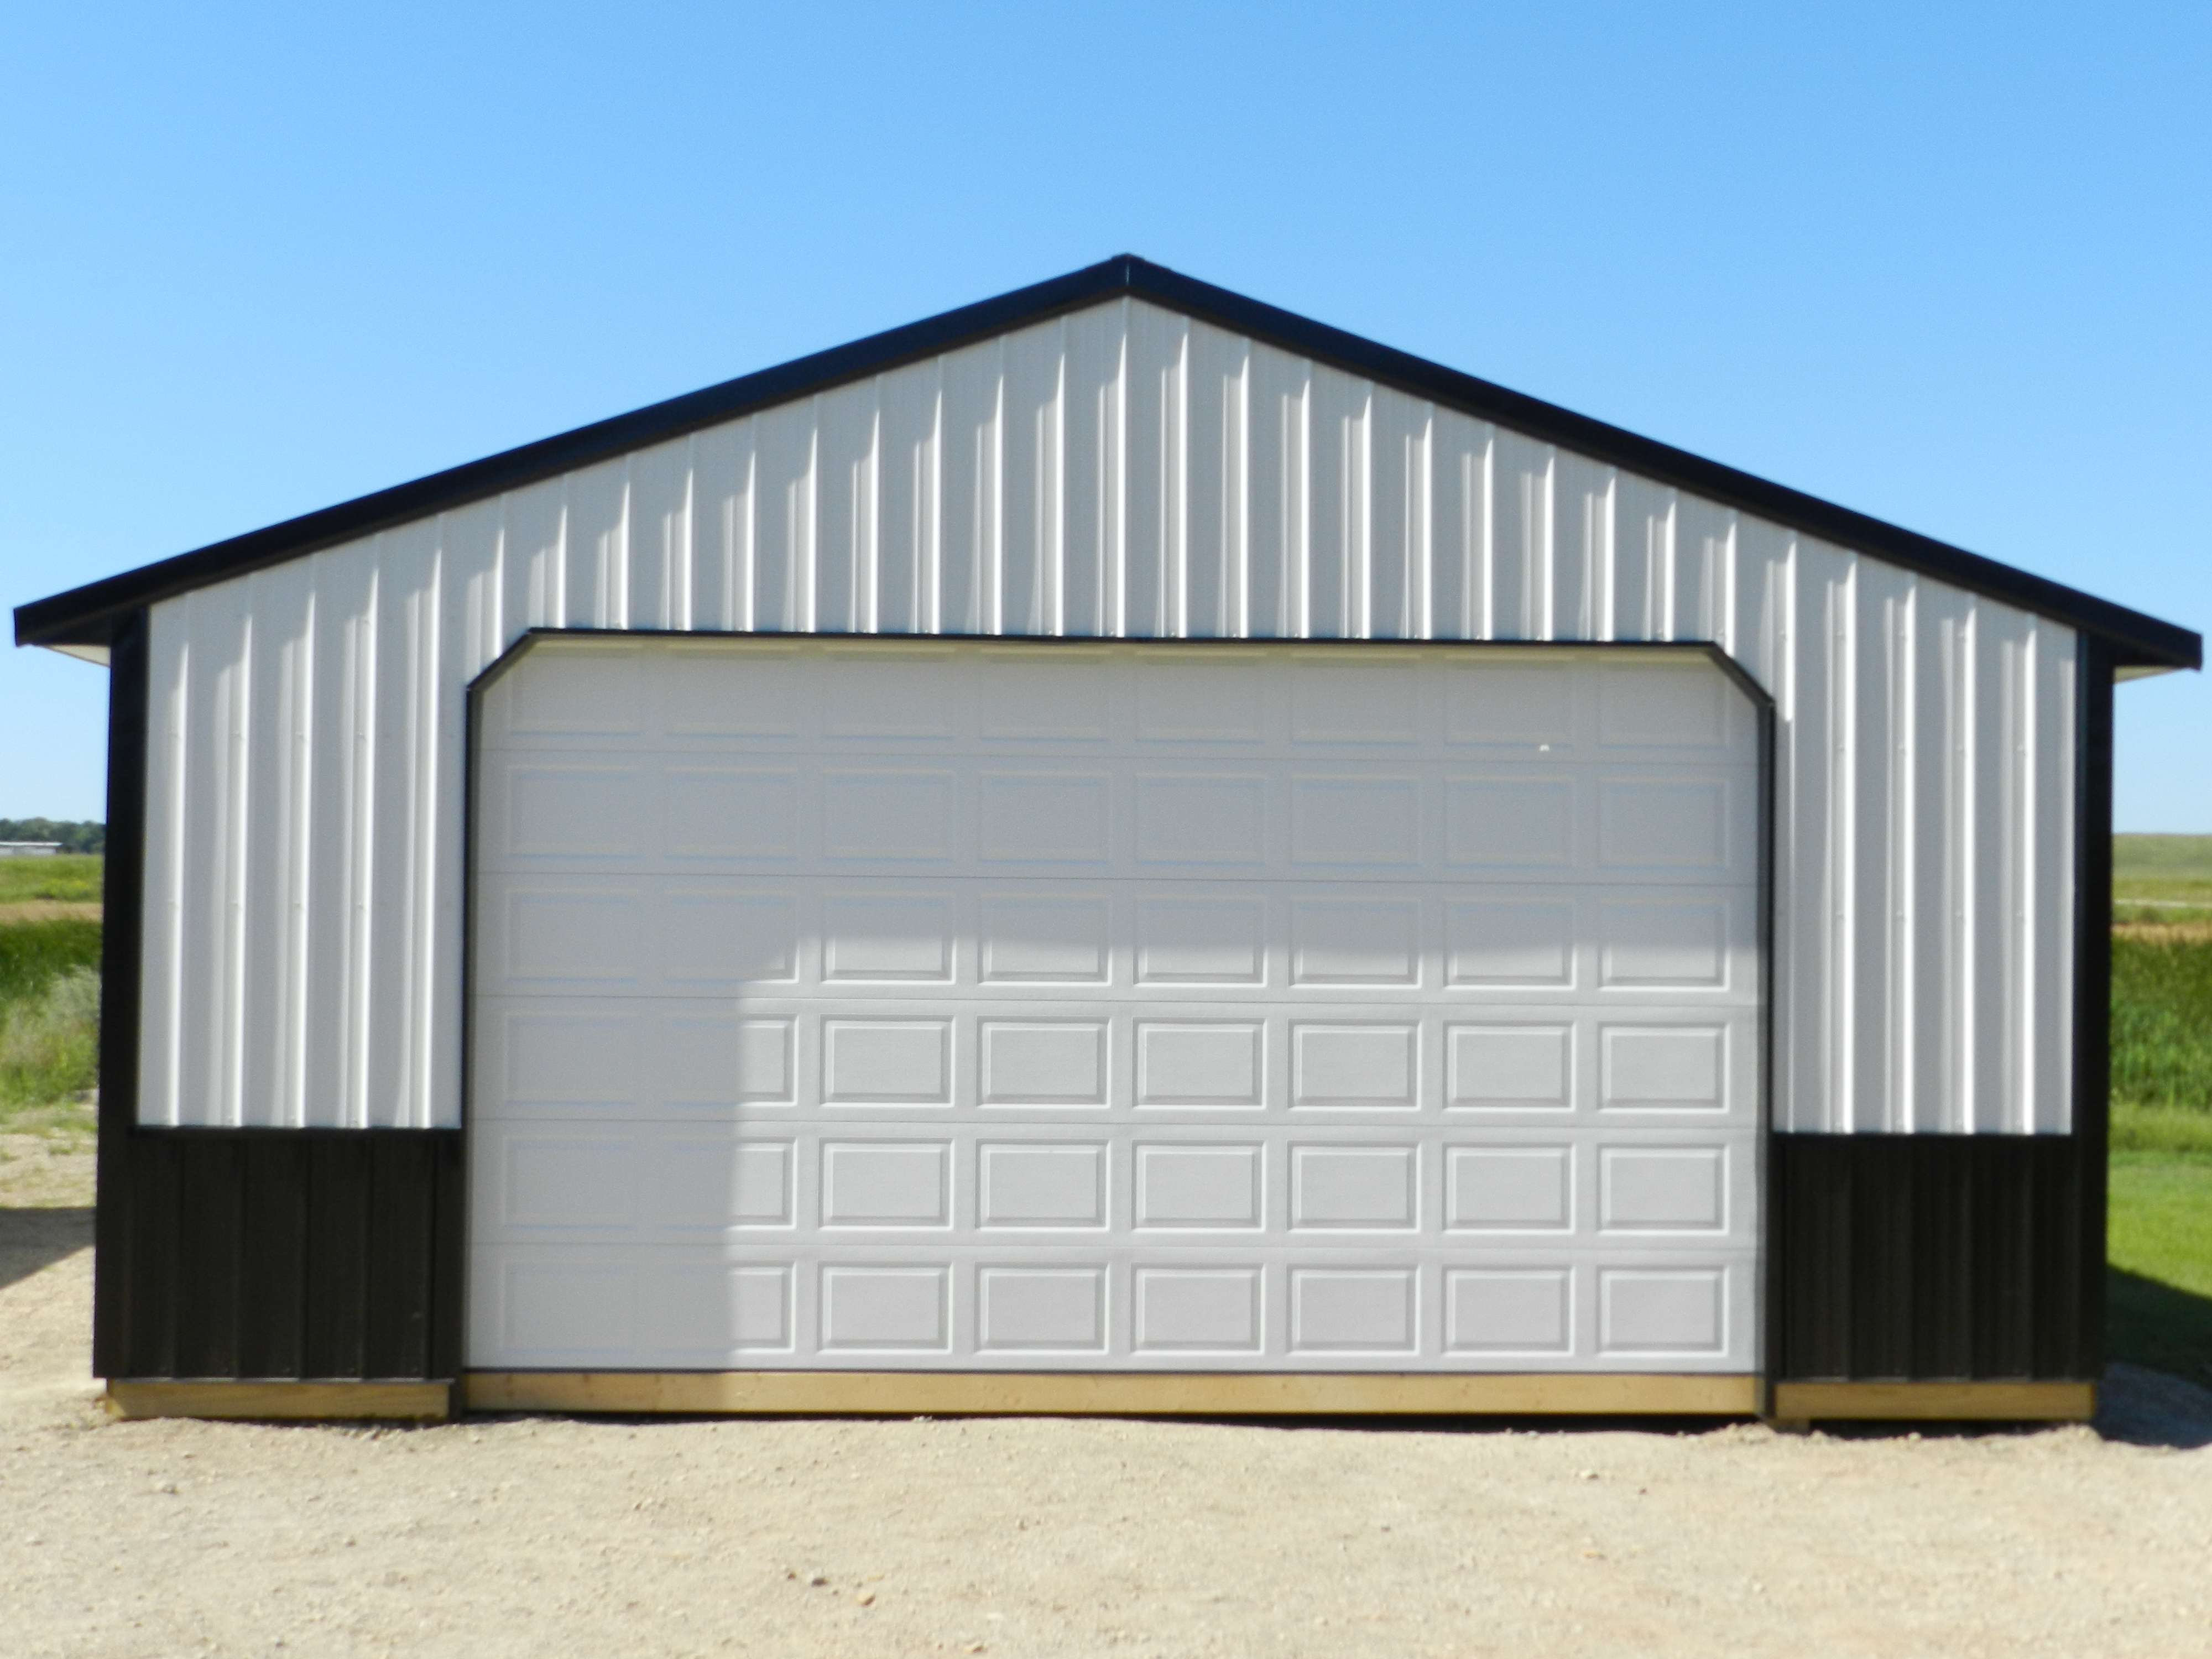 barns that door tall wide fit blog for classica have must can openings doors garage and the both amarr shed see